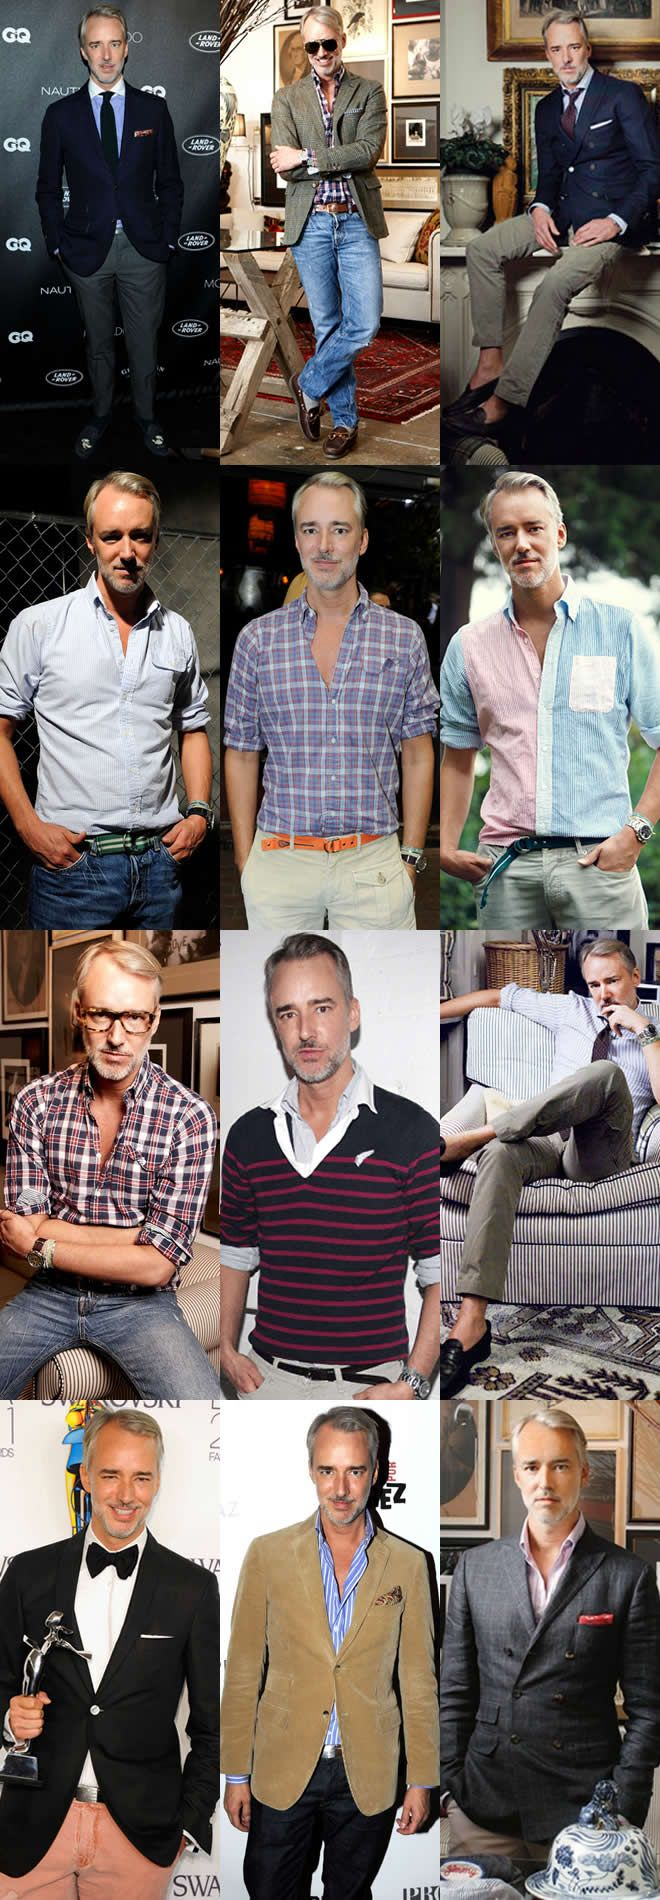 Michael Bastian. One of my favorite designers and here you see he lives the style he designs.